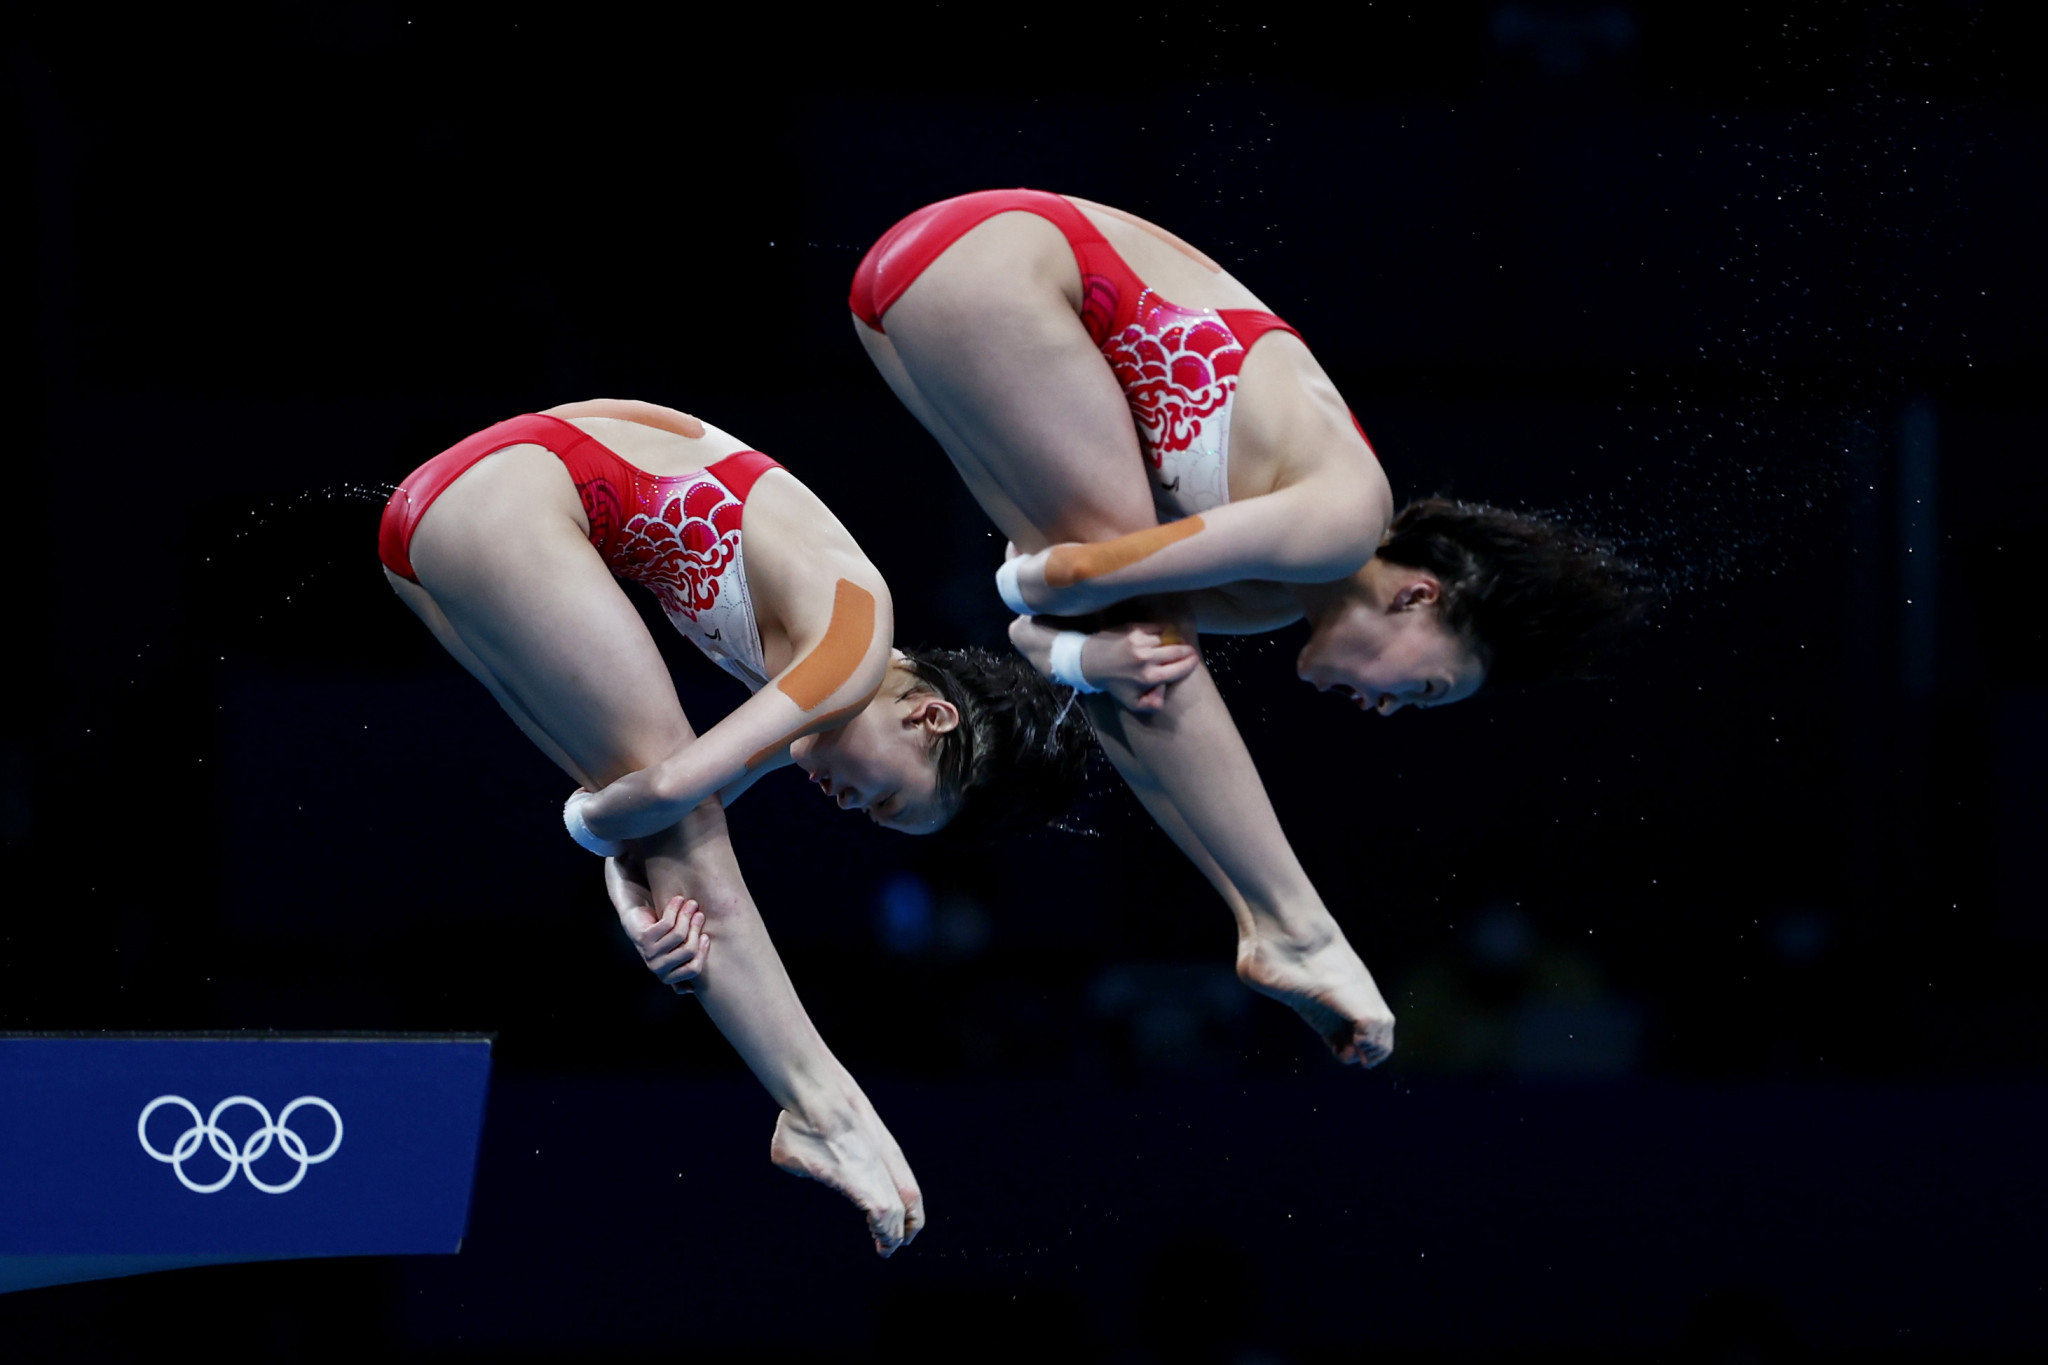 Teenagers Chen Yuxi and Zhang Jiaqi maintained China's record of winning the women's 10m synchronised platform gold medal each time the event has been contested at the Olympics ©Getty Images